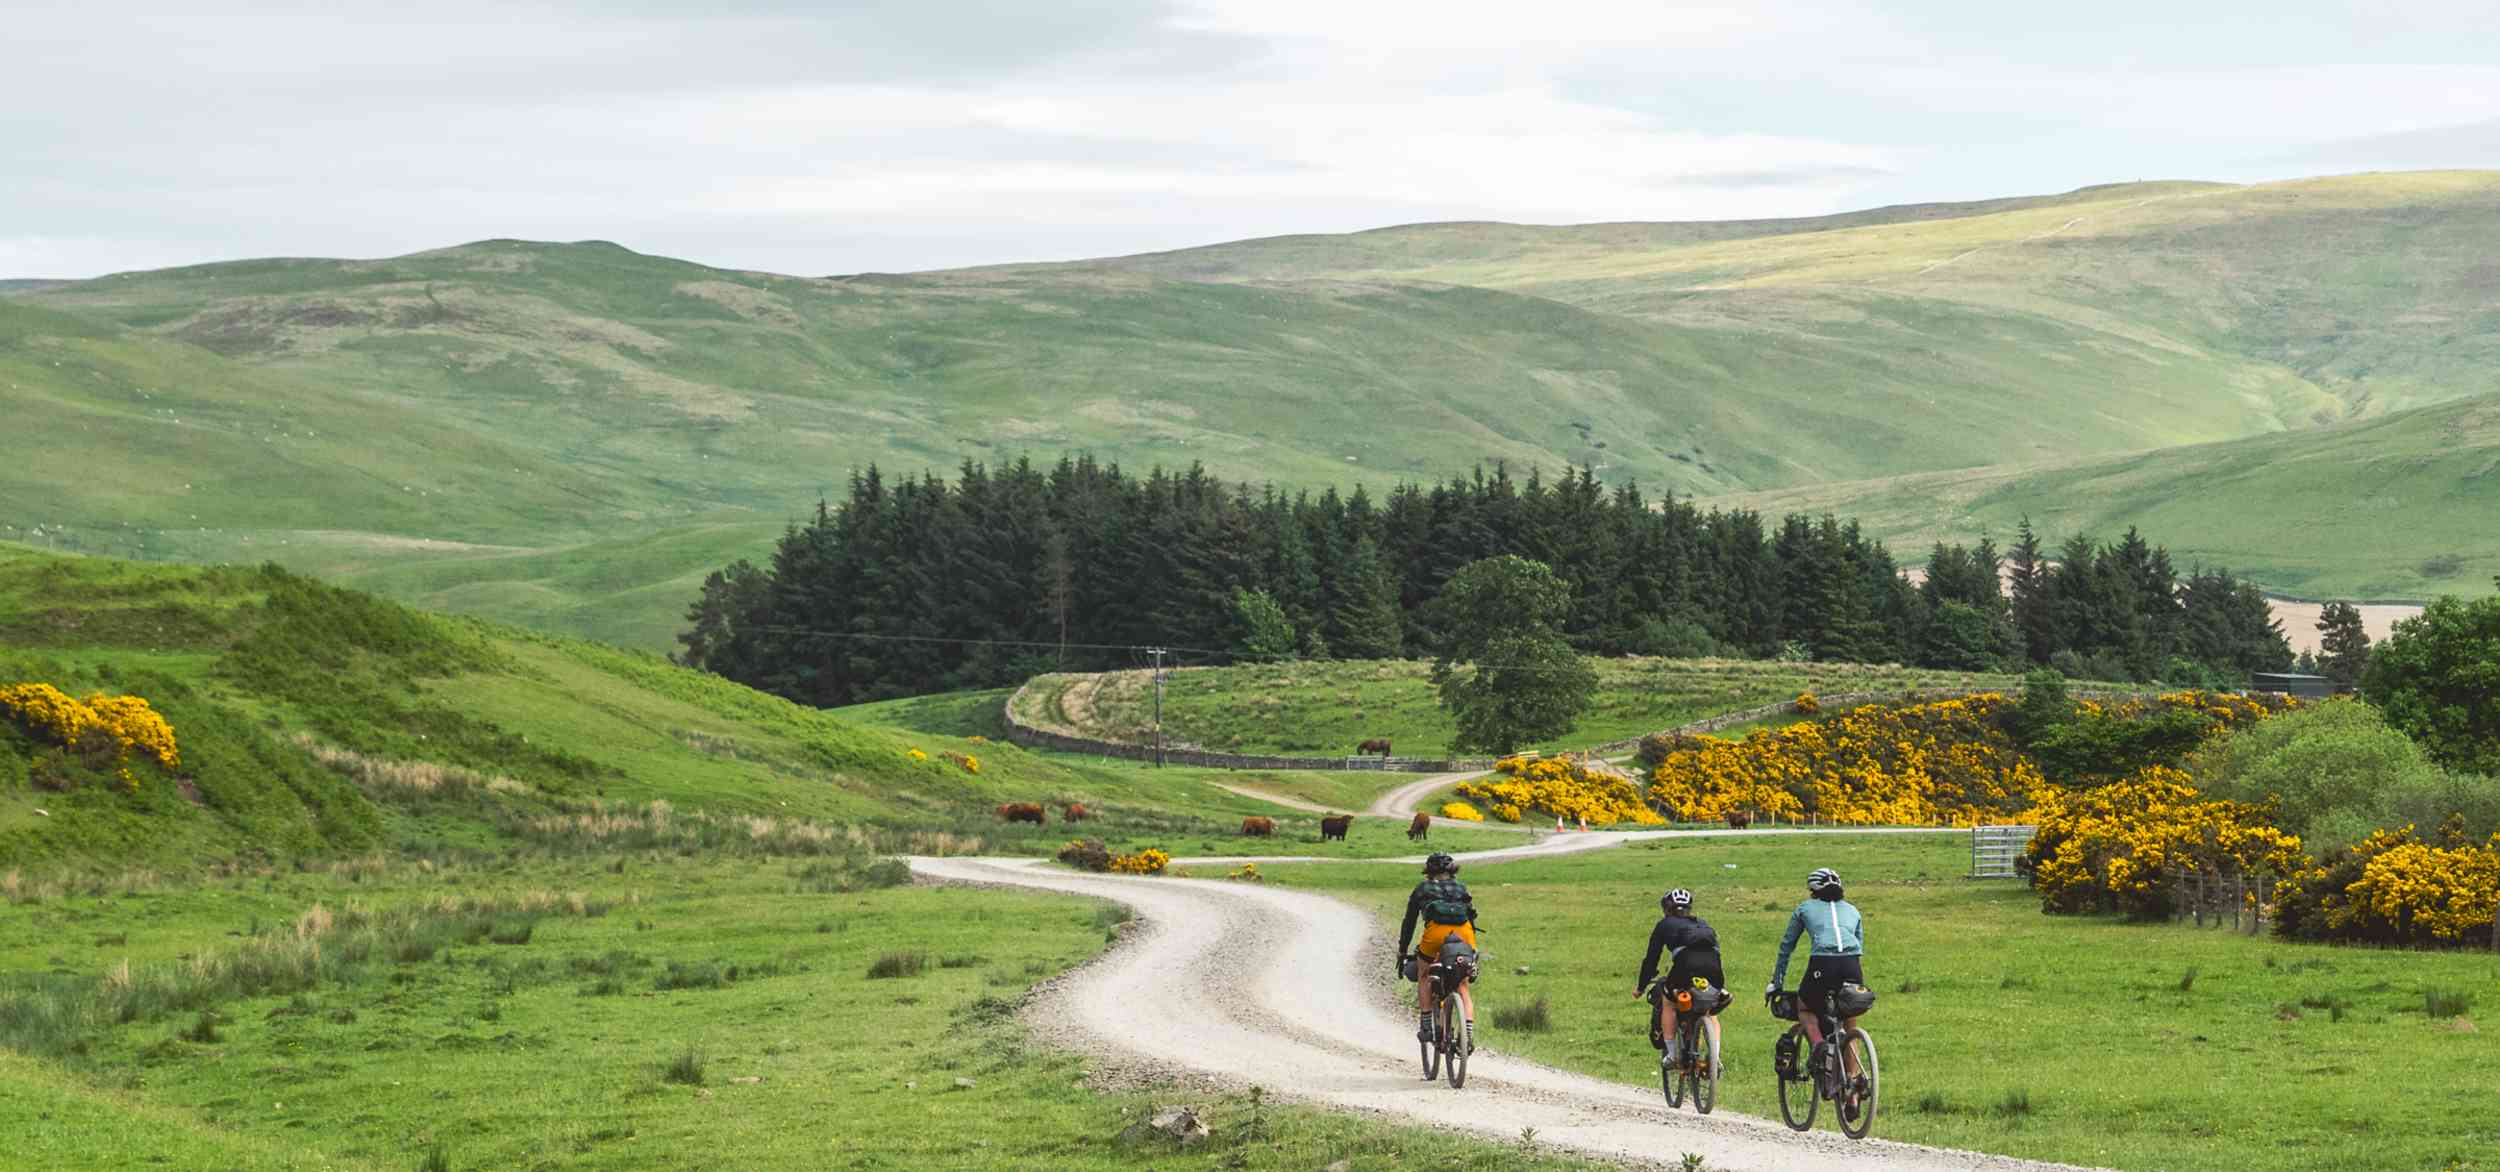 Alice and the Steezy Collective ride down gravel roads in the Pennines